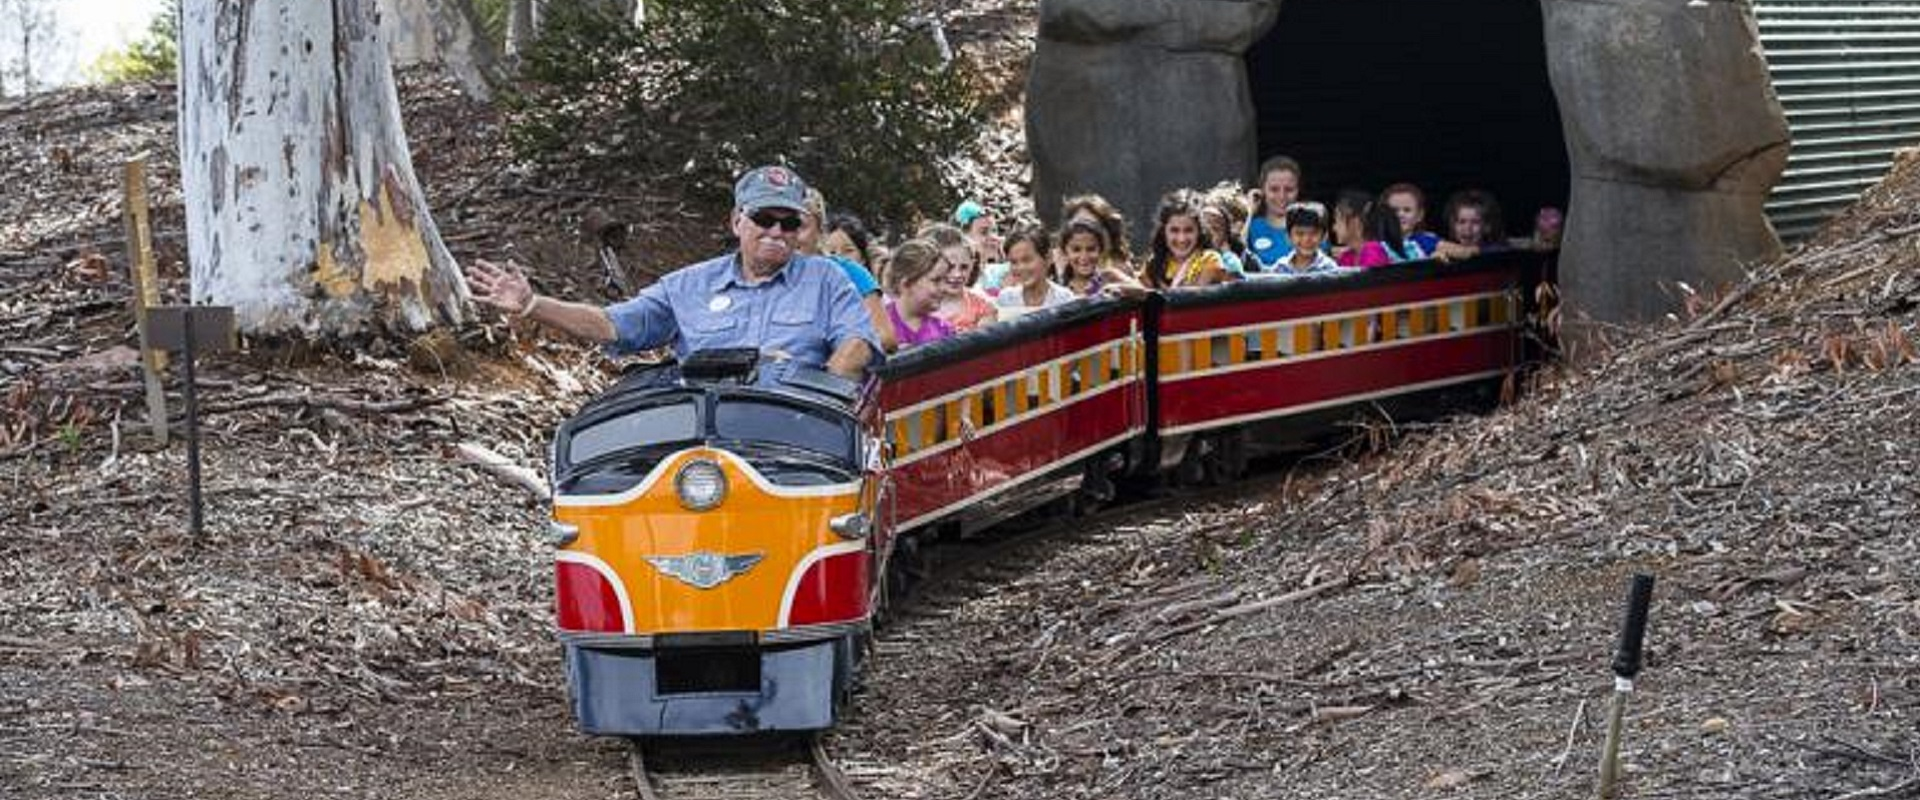 Miniature Train near the San Diego Zoo